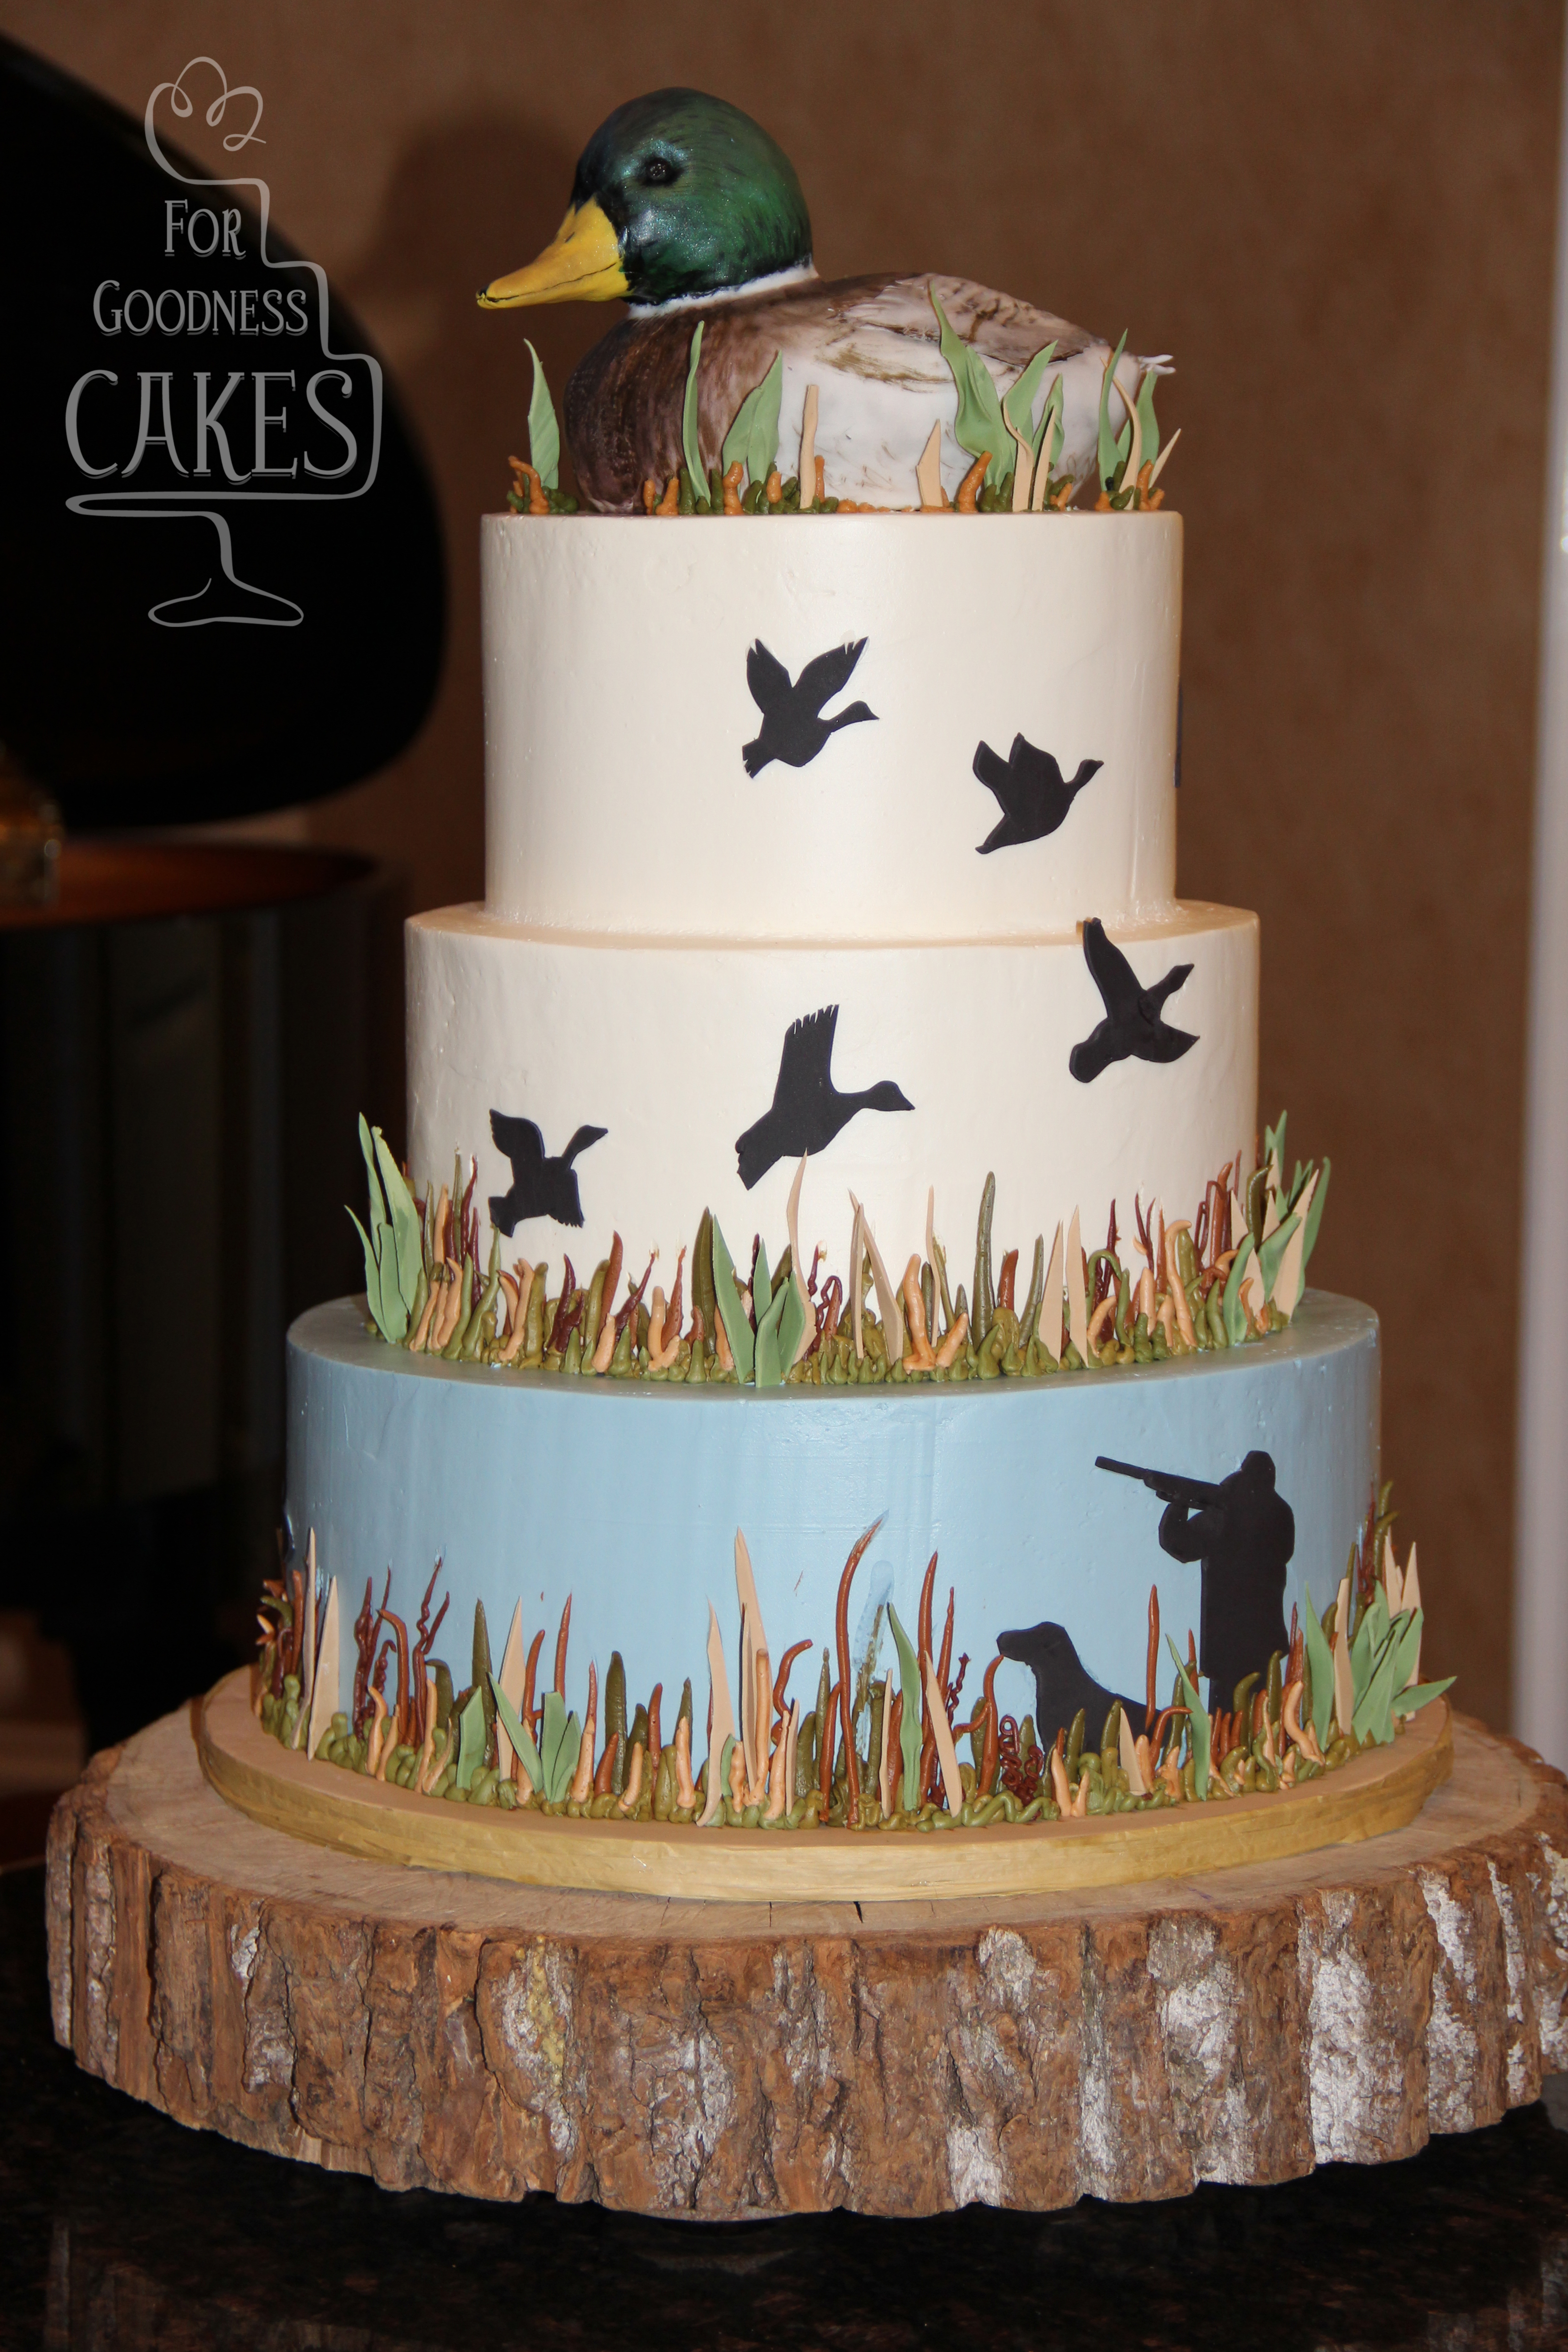 Duck Hunting Cake For Goodness Cakes Of Charlotte